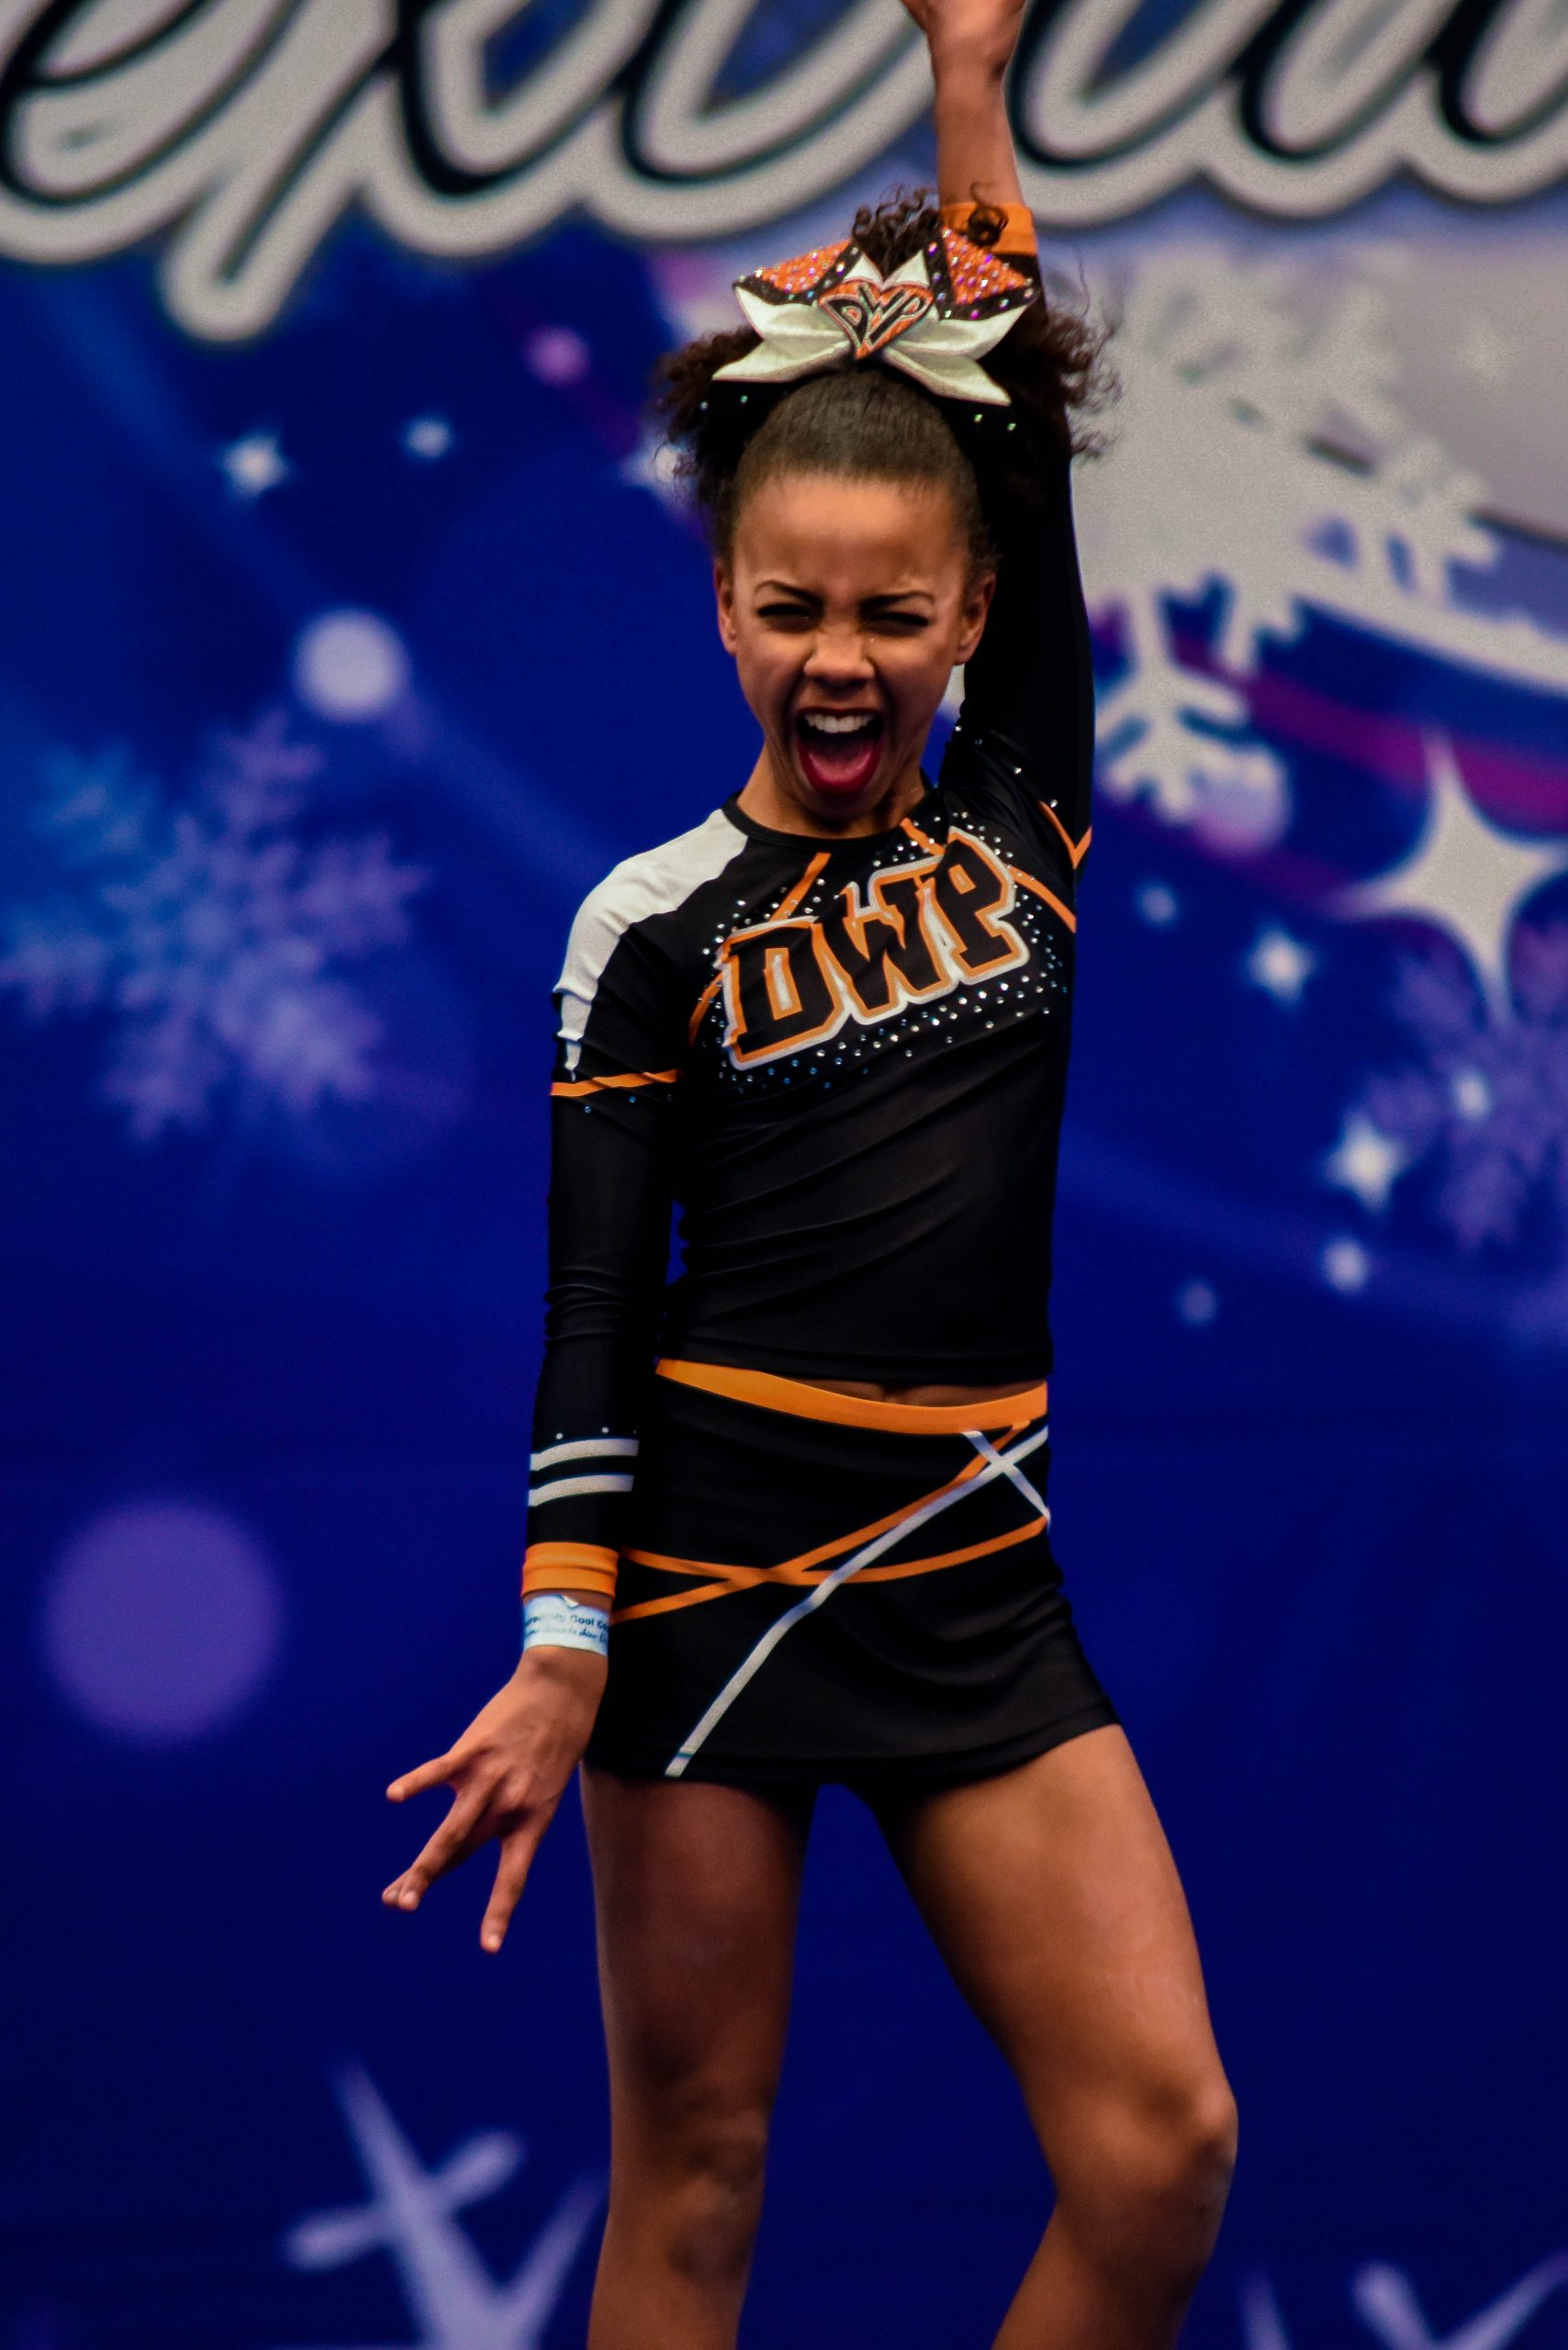 A cheer athlete competes at ICE Northern Frostbite